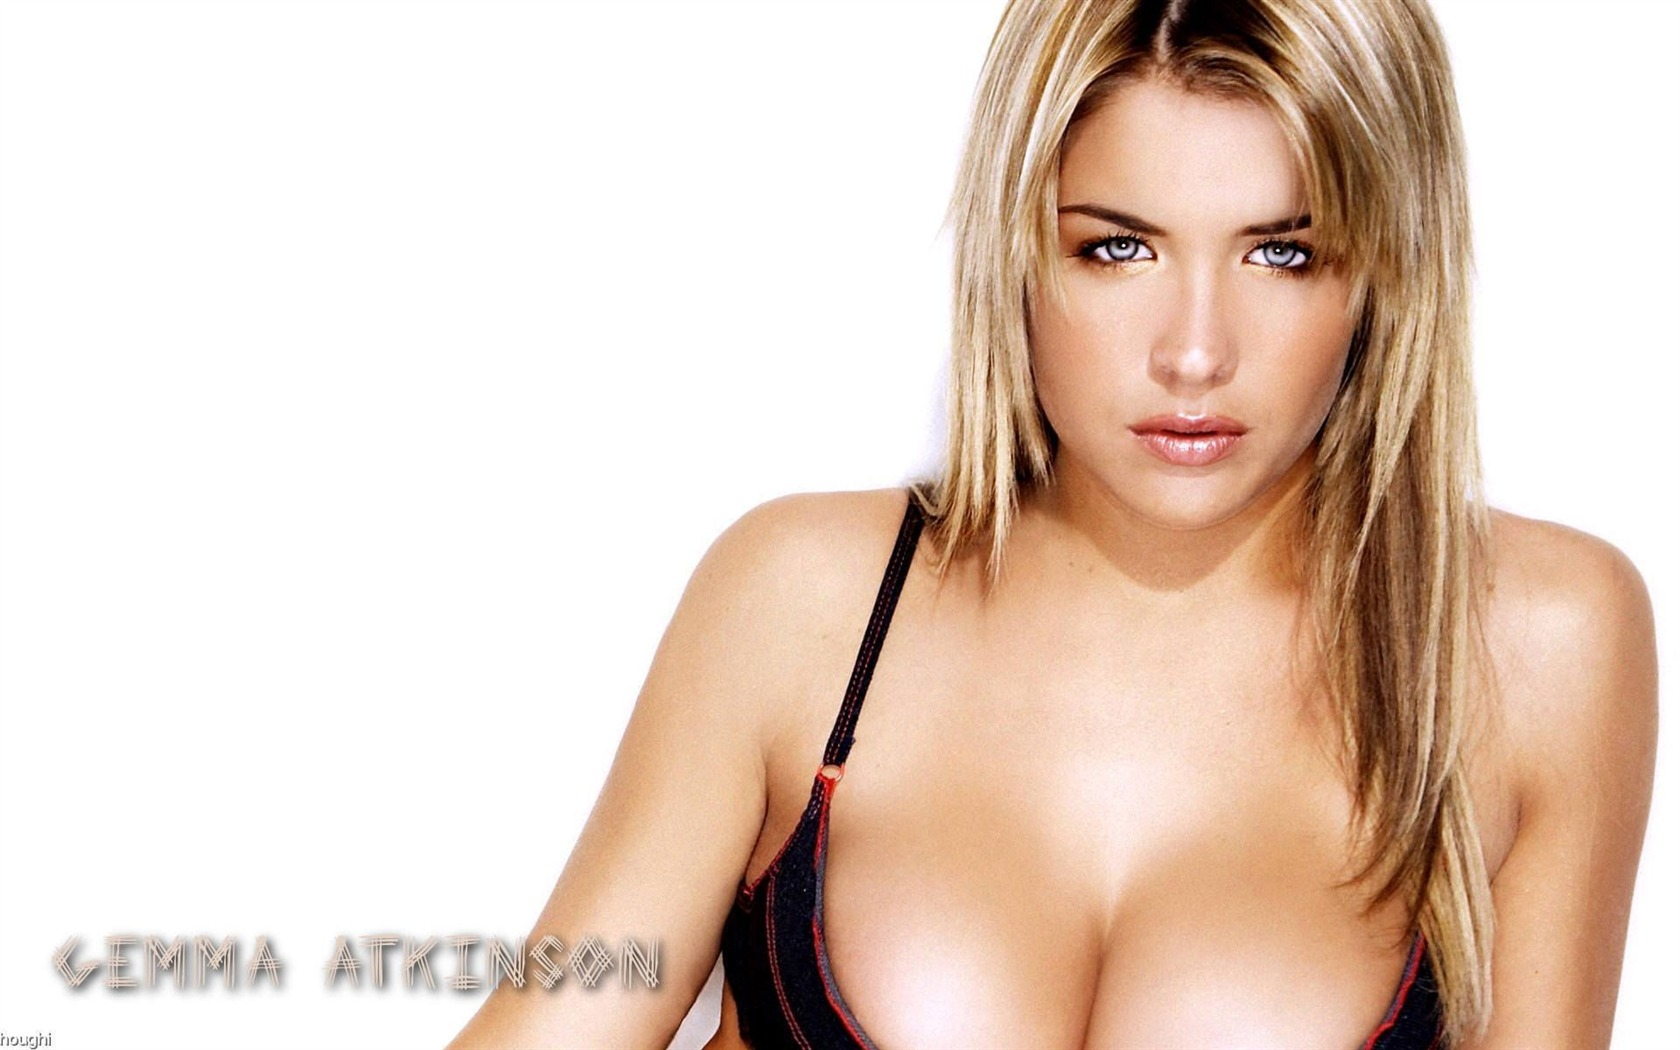 Gemma Atkinson #024 - 1680x1050 Wallpapers Pictures Photos Images